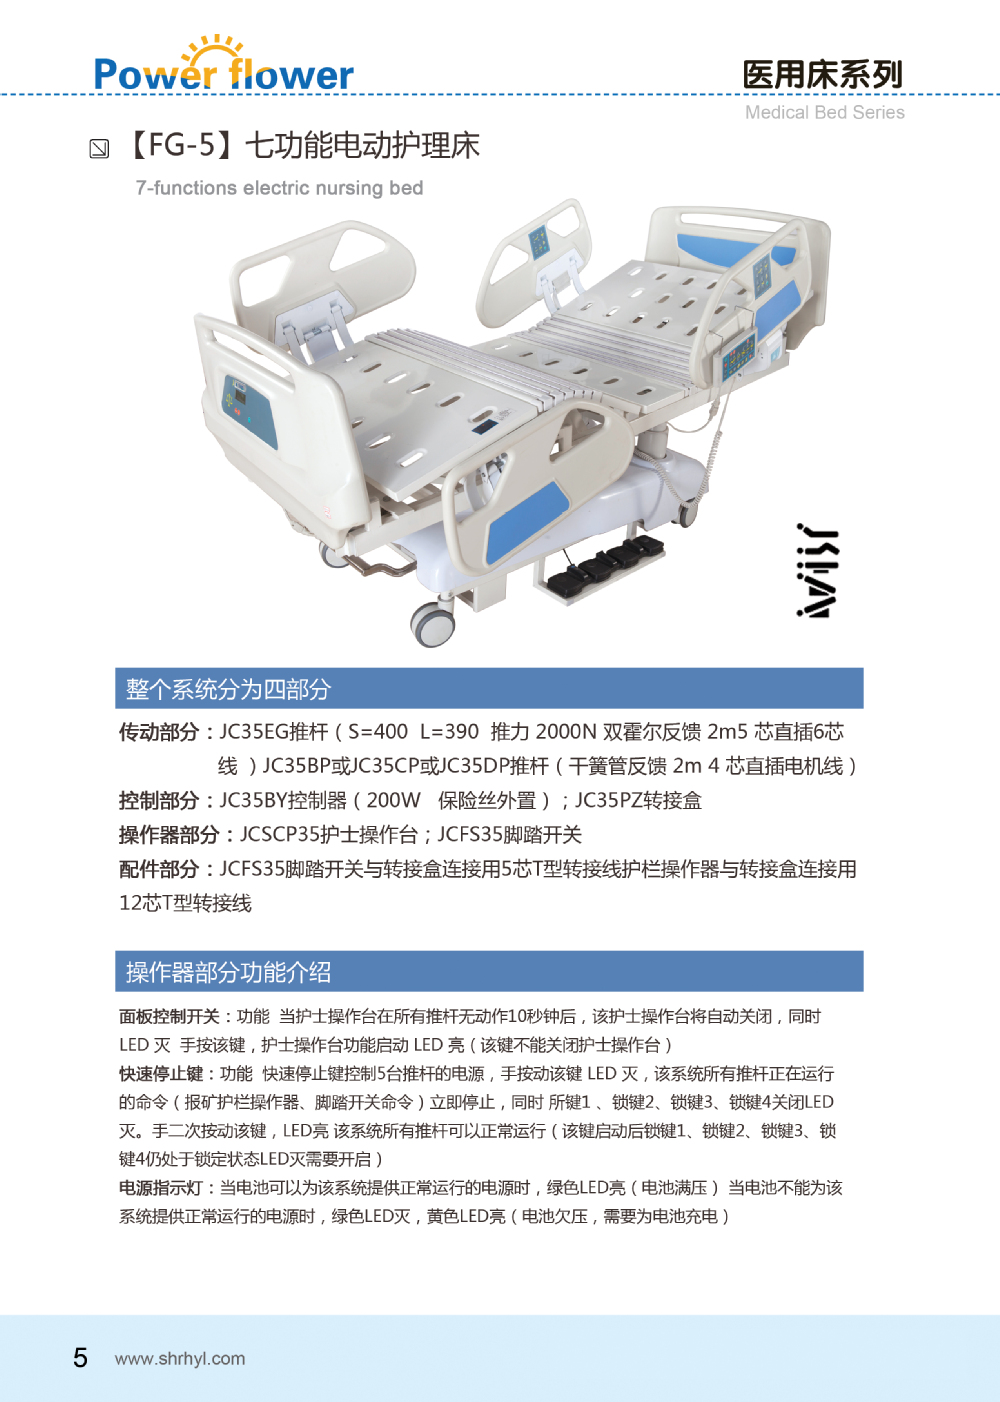 Cheap! FM-3 hospital linak electric hospital bed